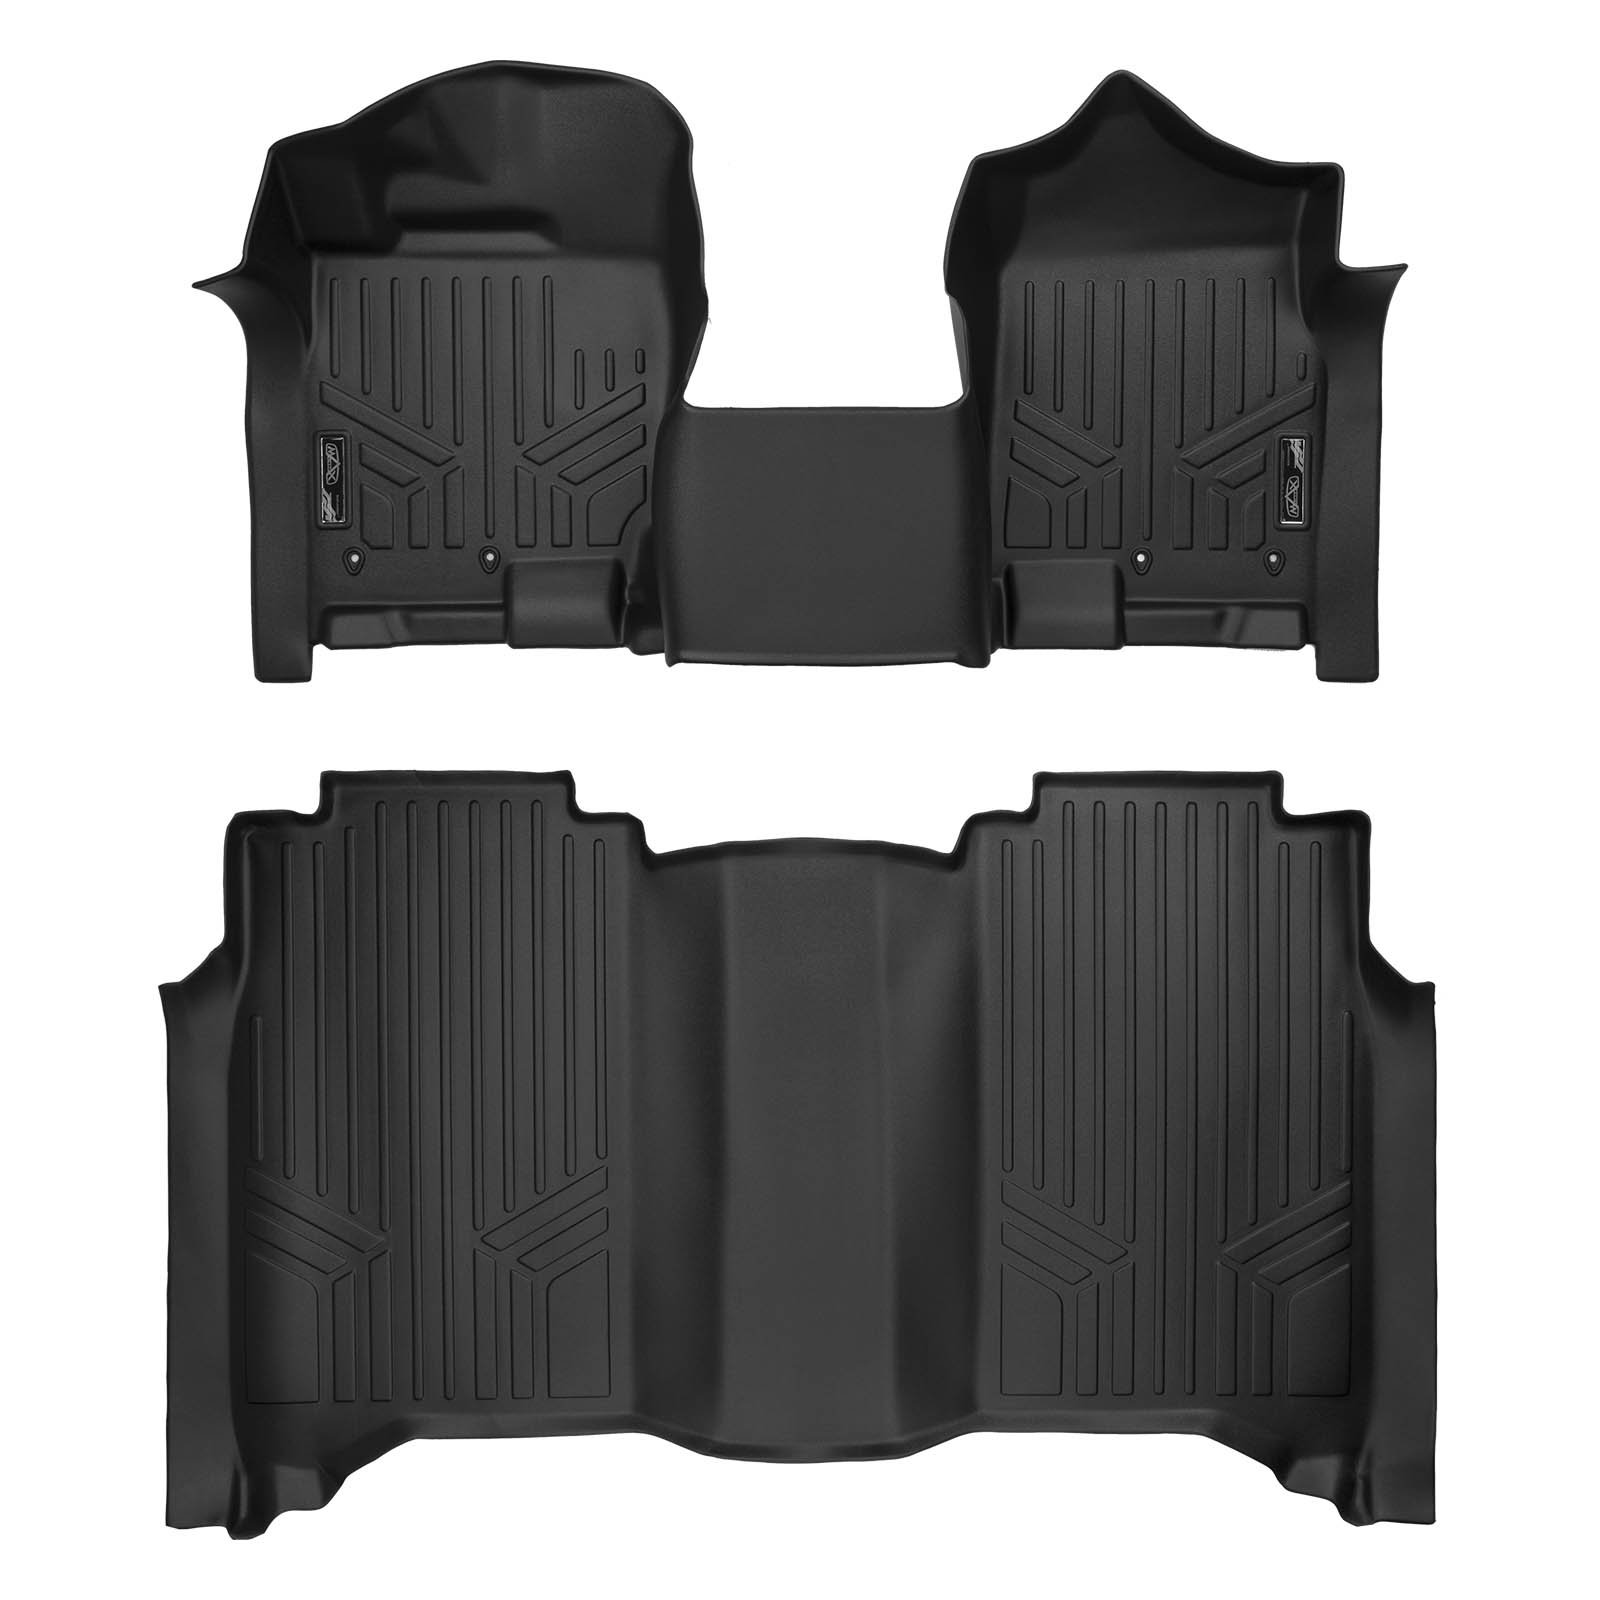 MAXLINER Floor Mats 2 Row Liner Set Black for 2017-2018 Nissan Titan / 2016-2018 Titan XD Crew Cab with 1st Row Bench Seat by MAX LINER